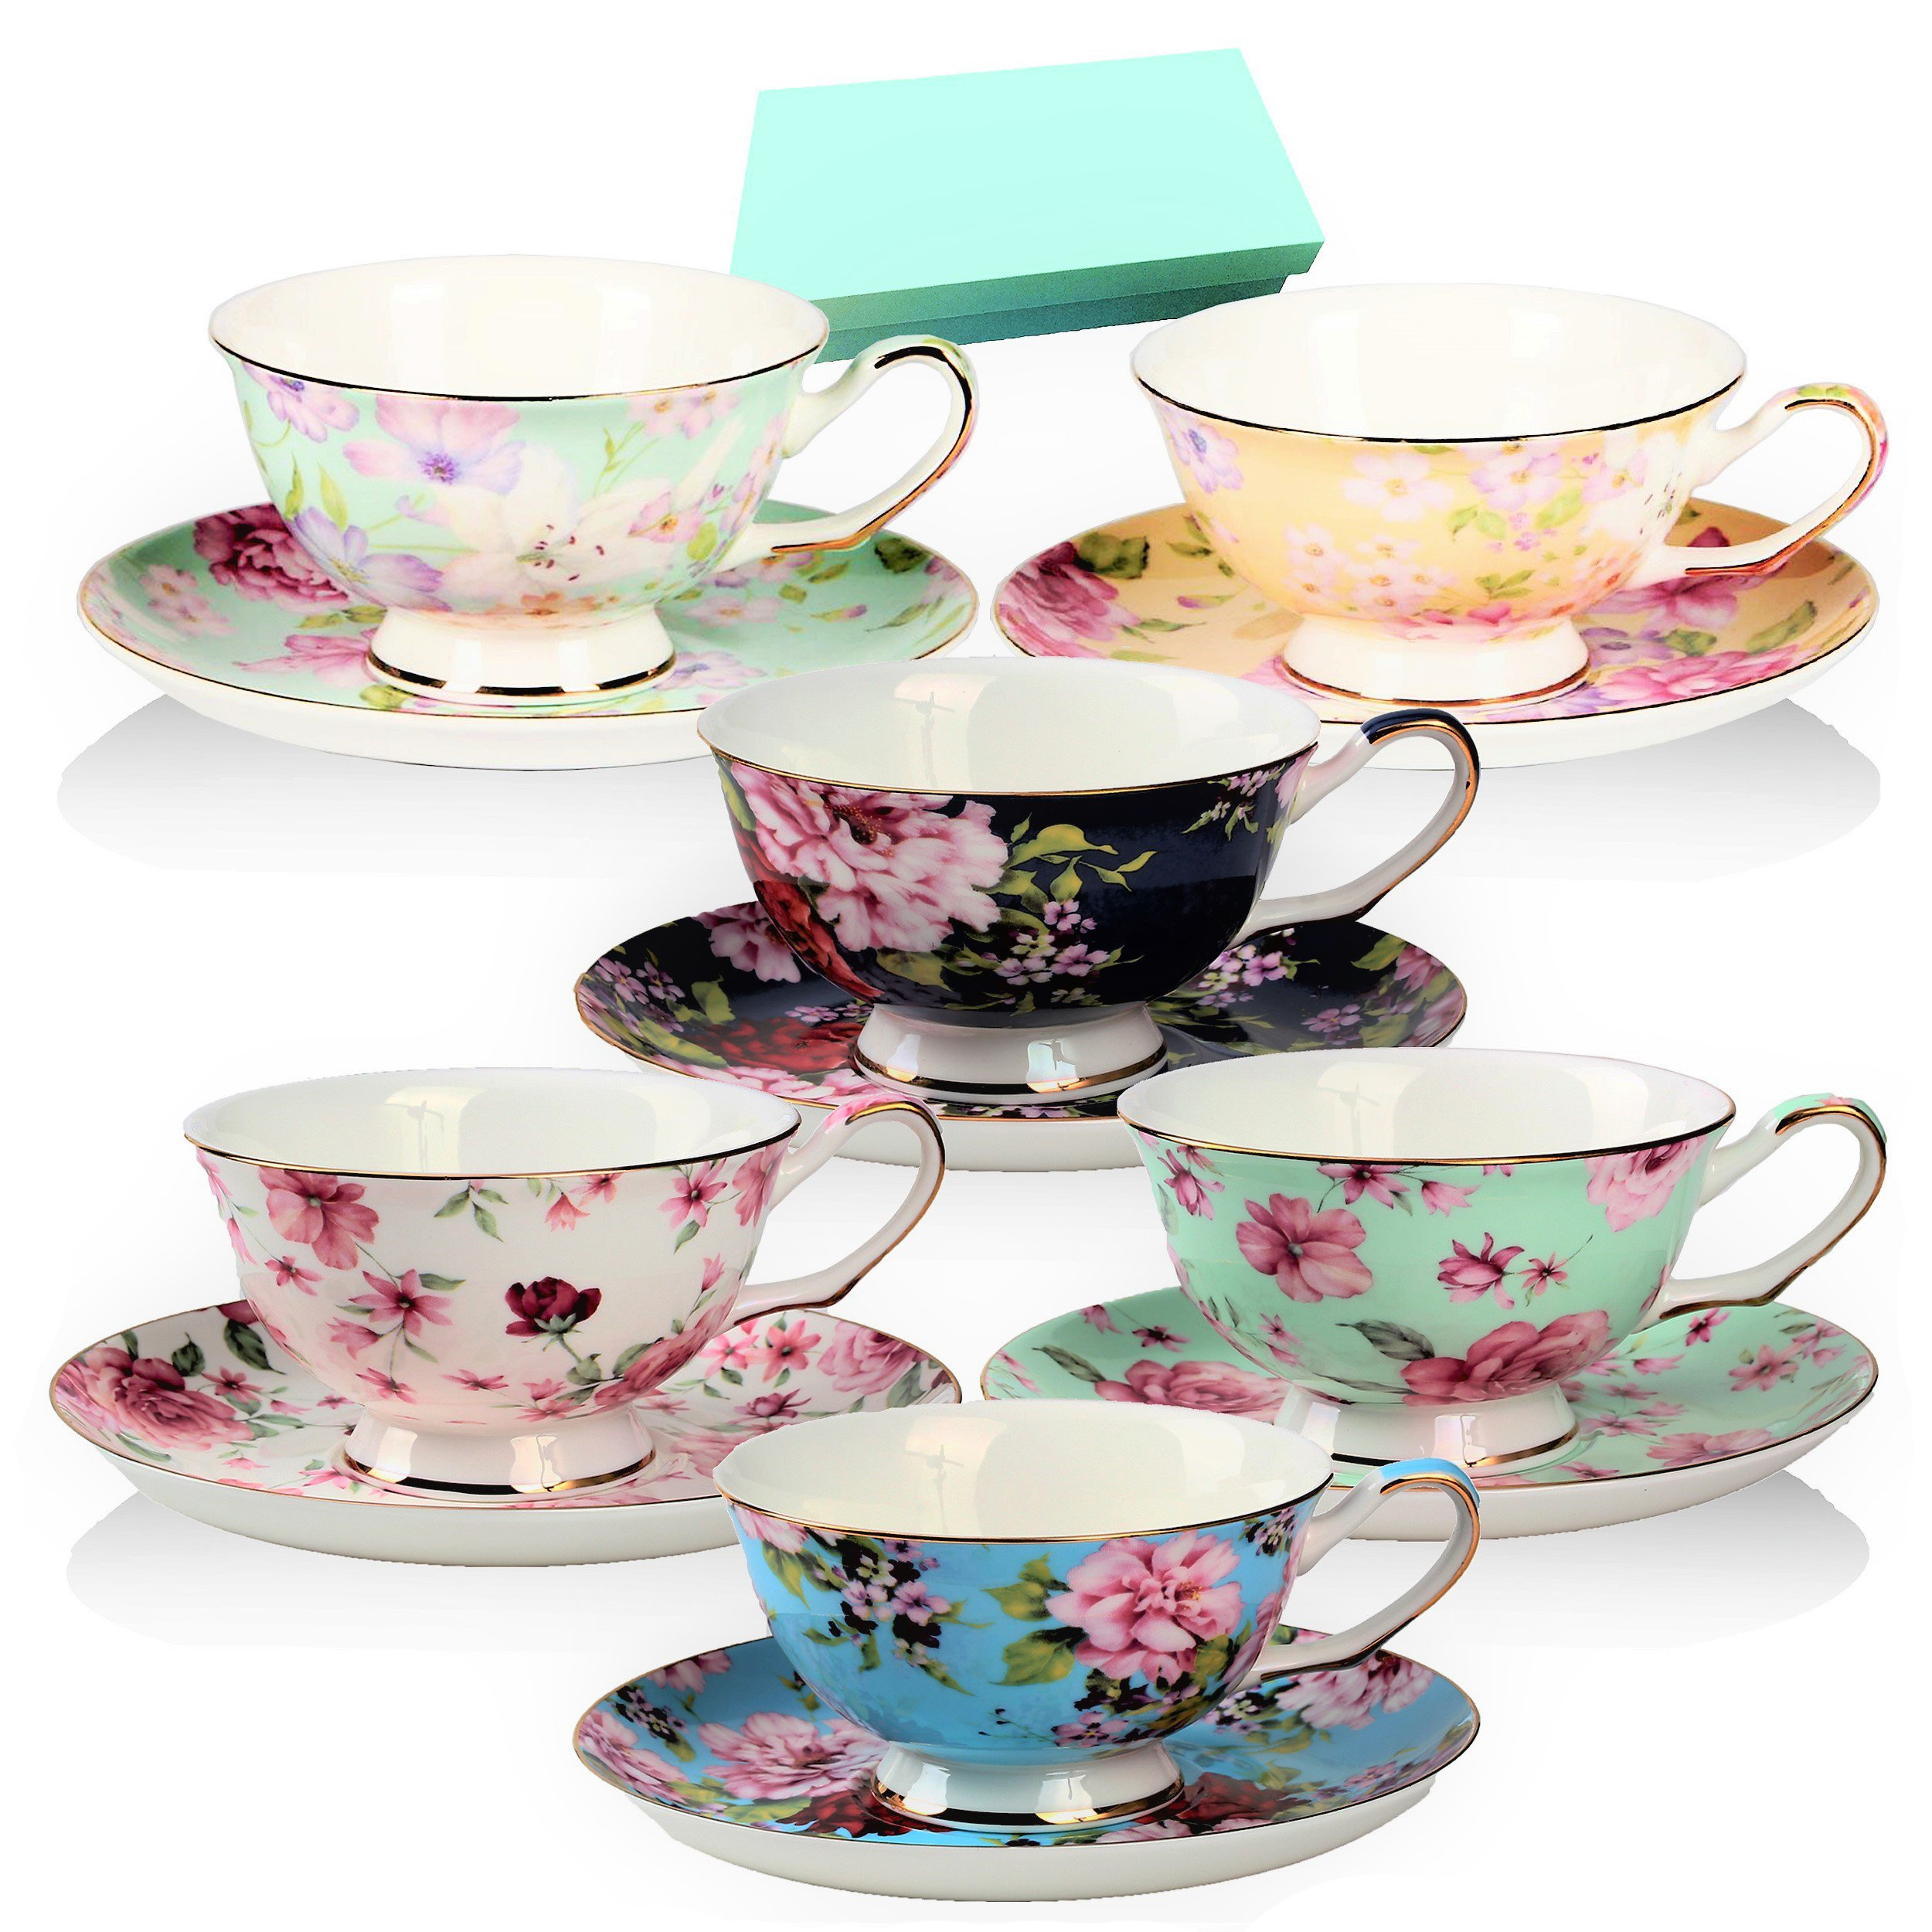 BTäT- Tea Cups, Tea Cups and Saucers Set of 6, Tea Set, Floral Tea Cups (7oz), Tea Cups and Saucers Set, Tea Set, Porcelain Tea Cups, Tea Cups for Tea Party, Rose Teacups, China Tea Cups (Bone China)